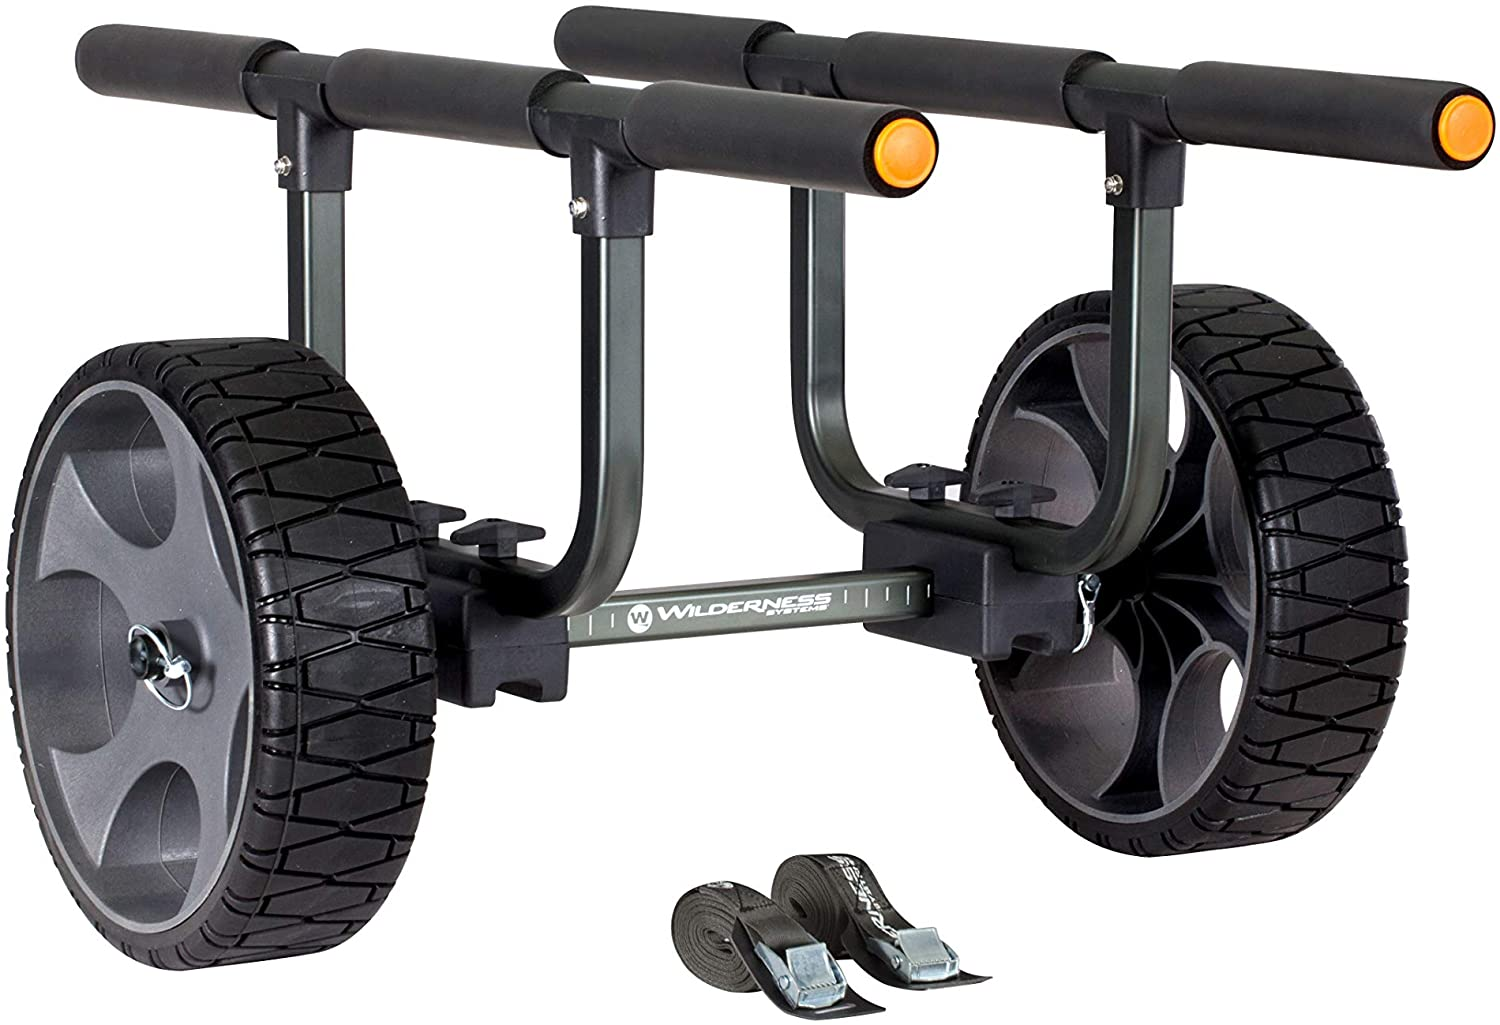 Wilderness Systems Heavy Duty Kayak Cart with Beach Tires   8070167 NEW